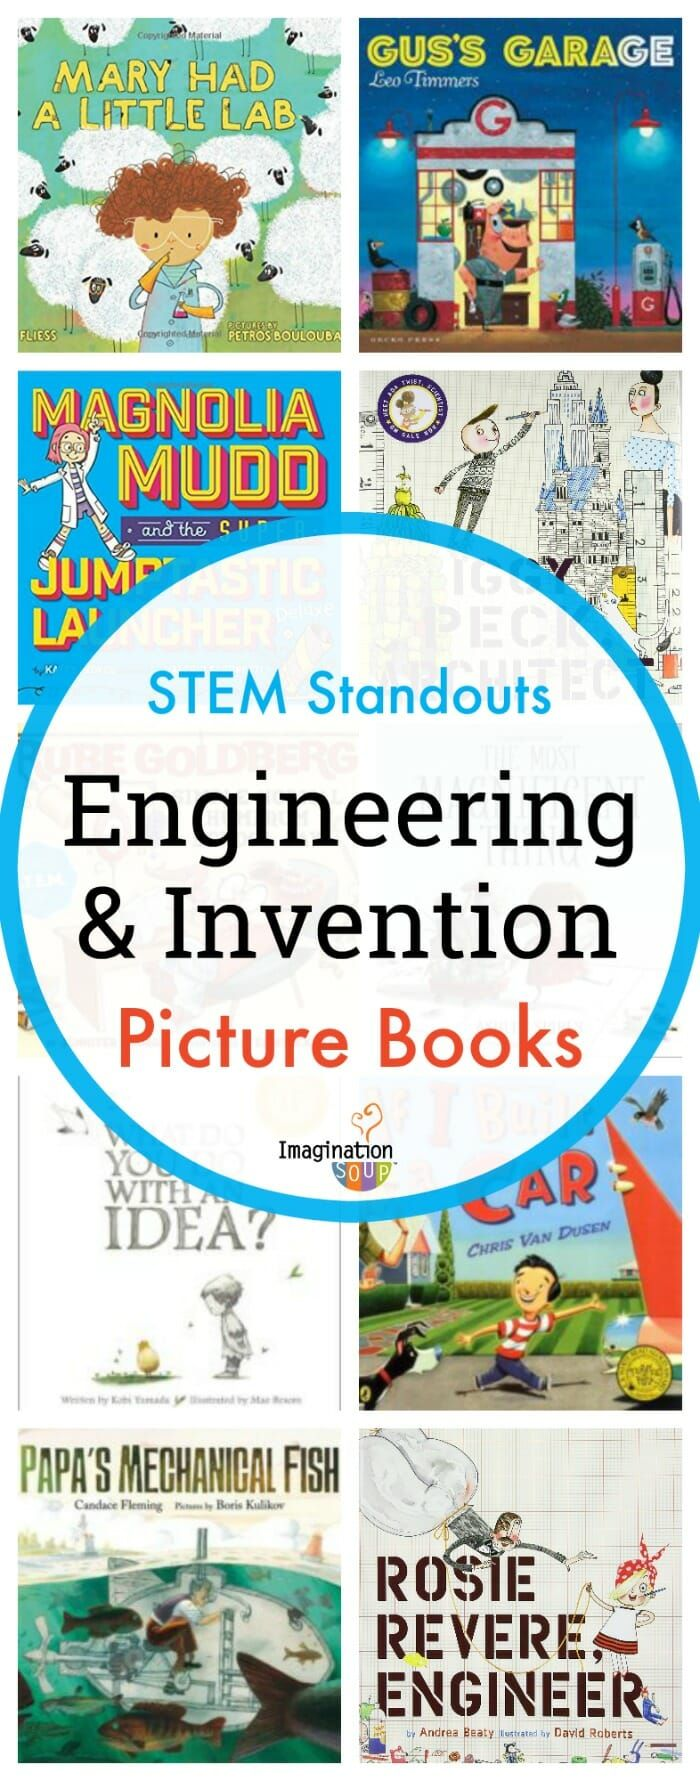 11 Standout STEM Engineering and Invention Picture Books #kids #engineering #childrensbooks